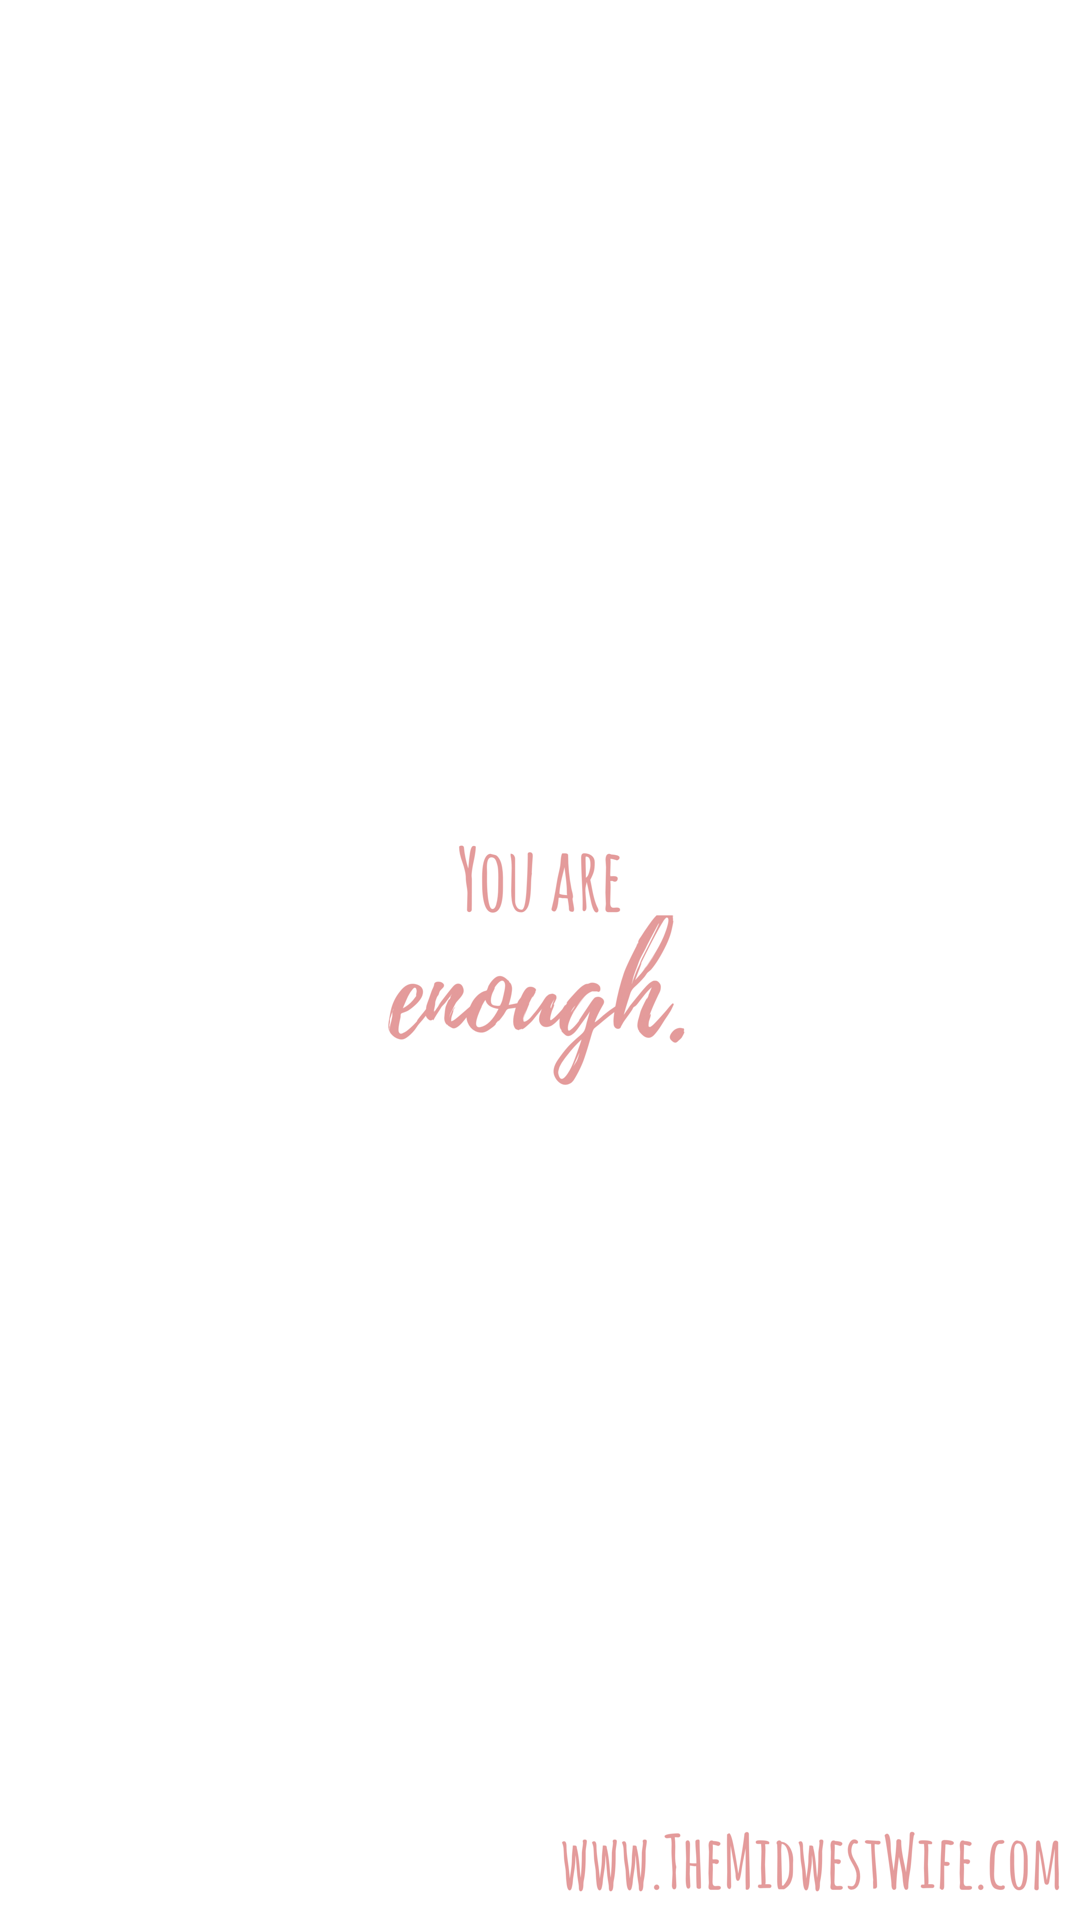 Motivation Motivational Quote Minimal White Pink Iphone Phone Background Lock Screen Wallpaper Motivational Quotes Phone Backgrounds Quotes Pink Iphone